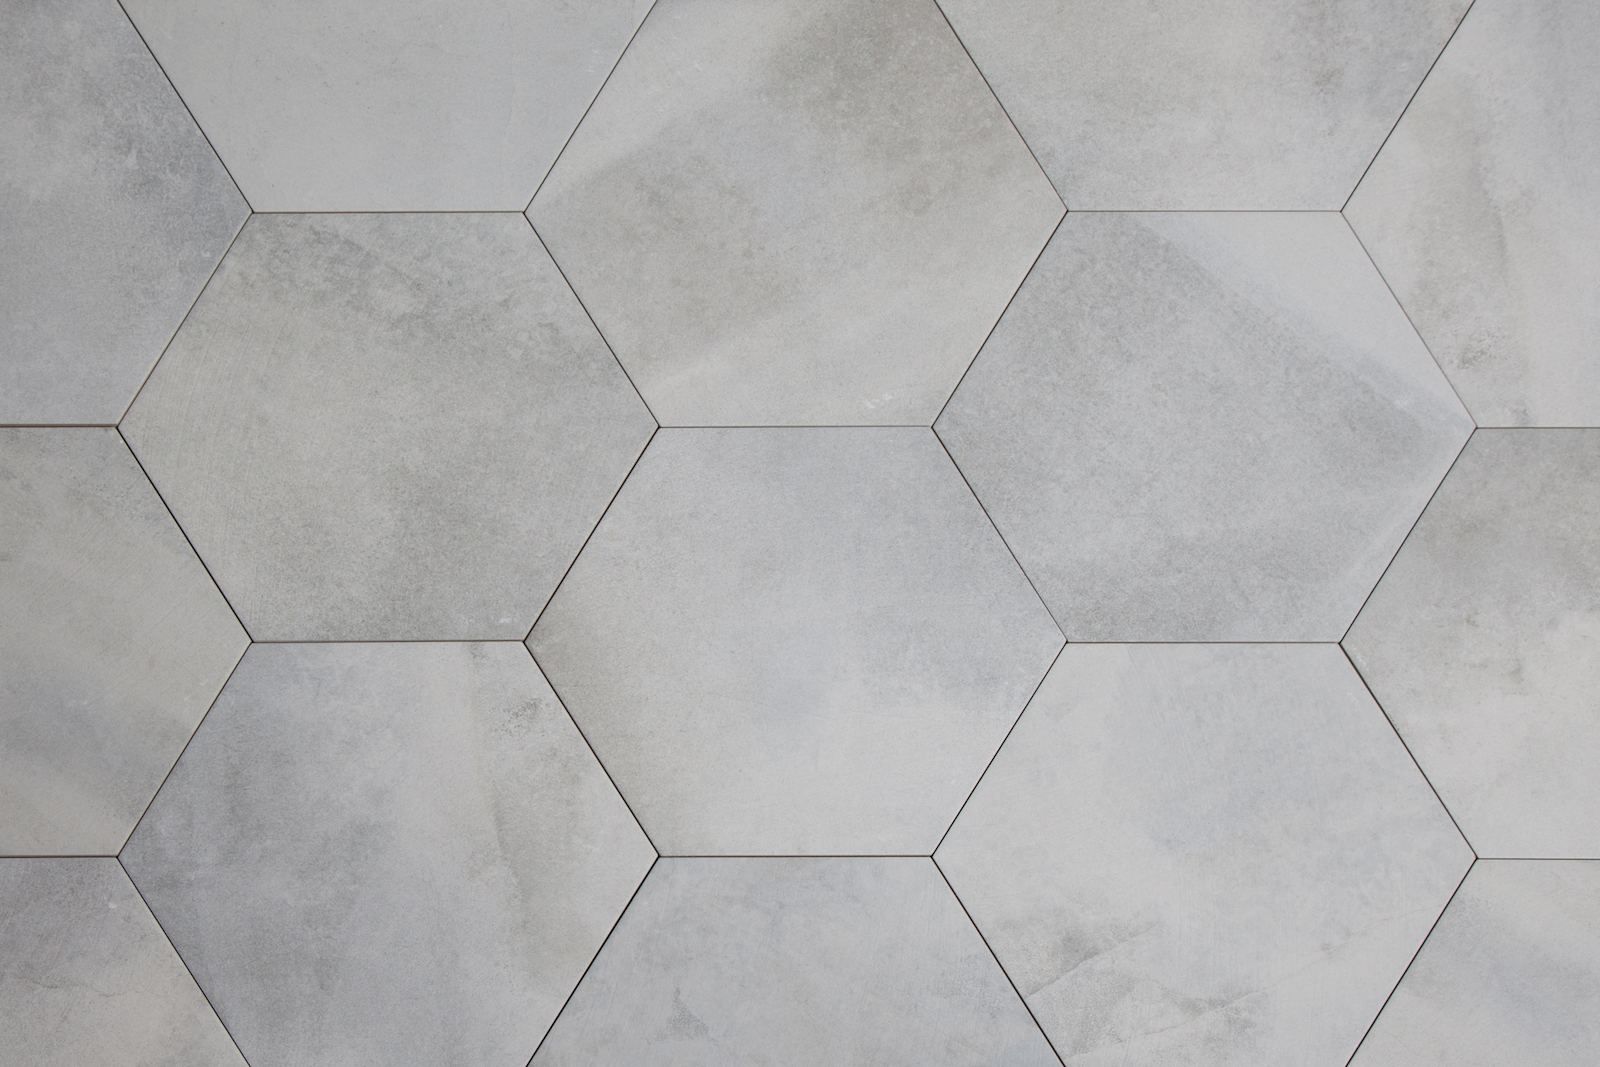 Floor Tiles By Brand Theme South Cypress - 16 x 16 white ceramic floor tile